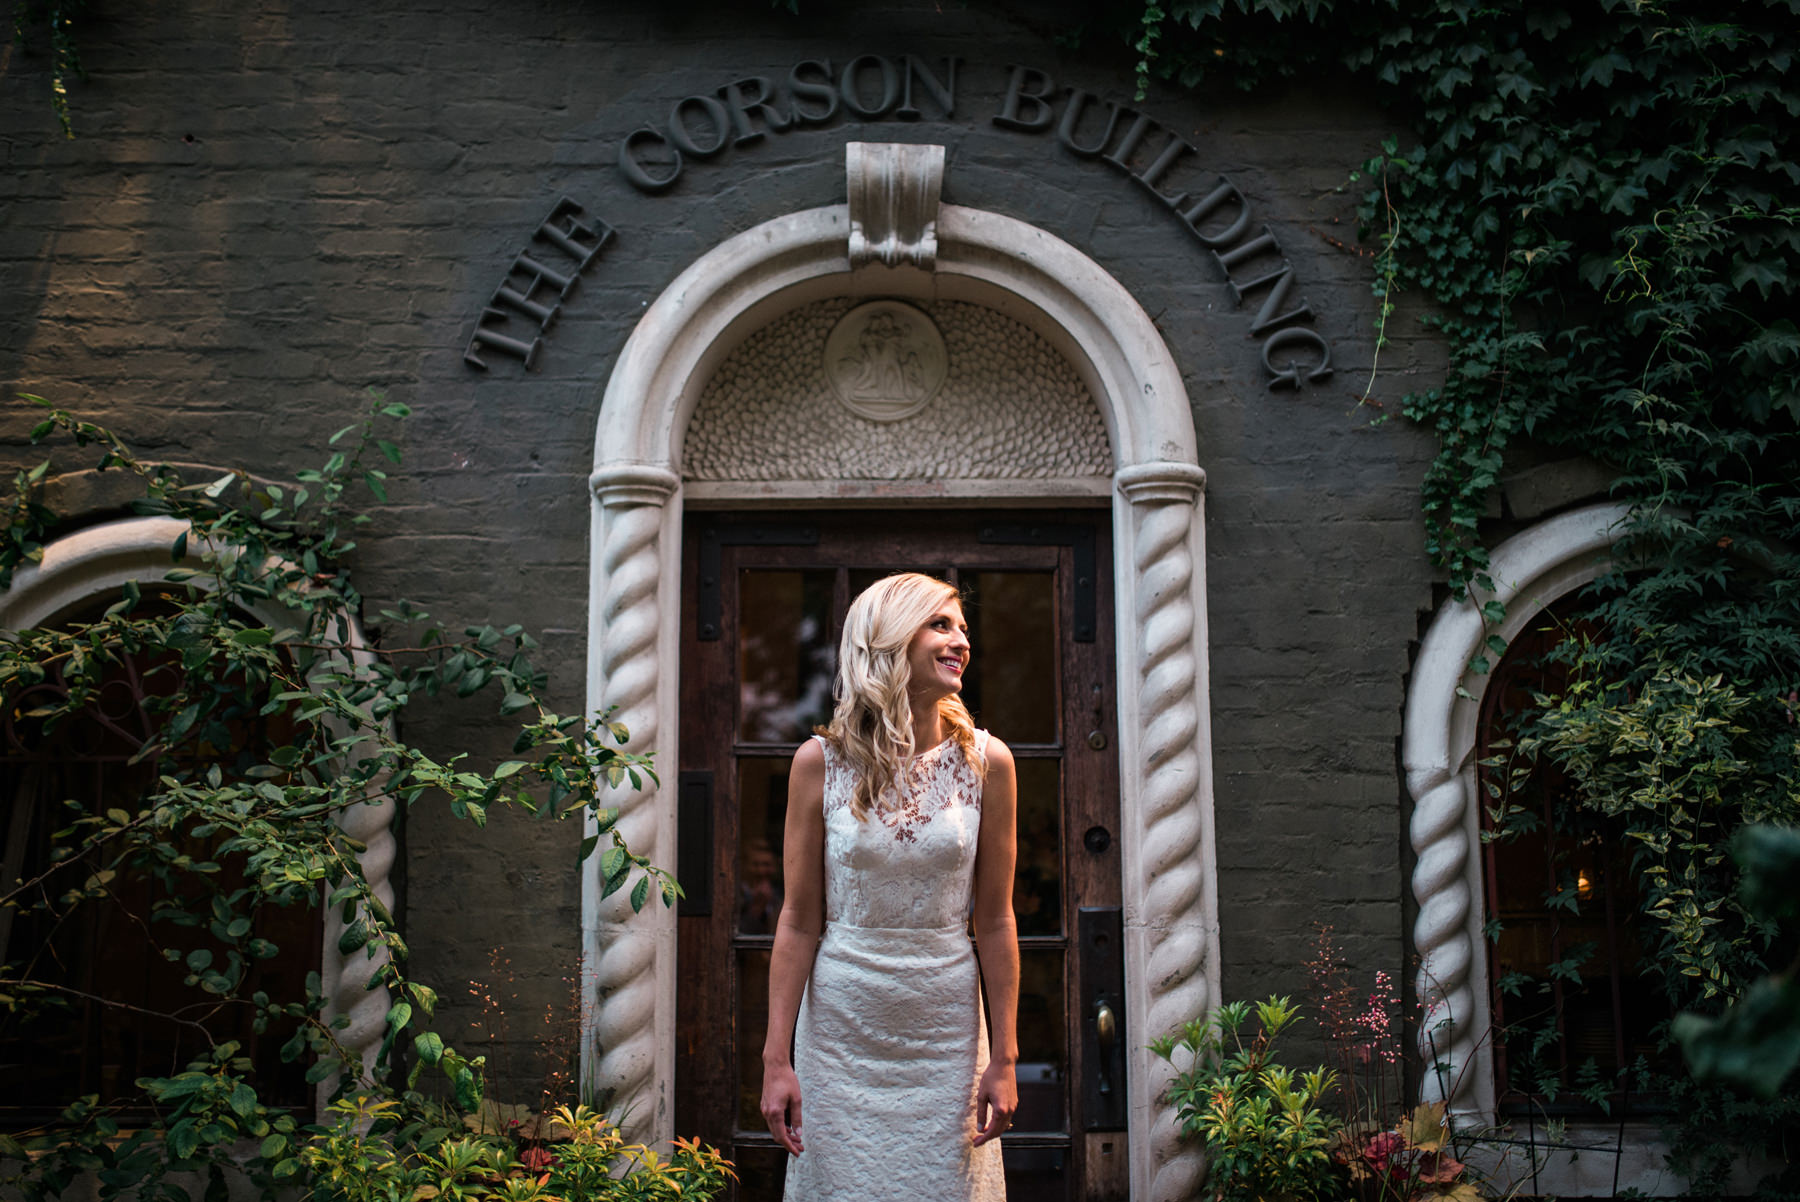 226-outdoor-wedding-at-the-corson-building-in-seattle.jpg